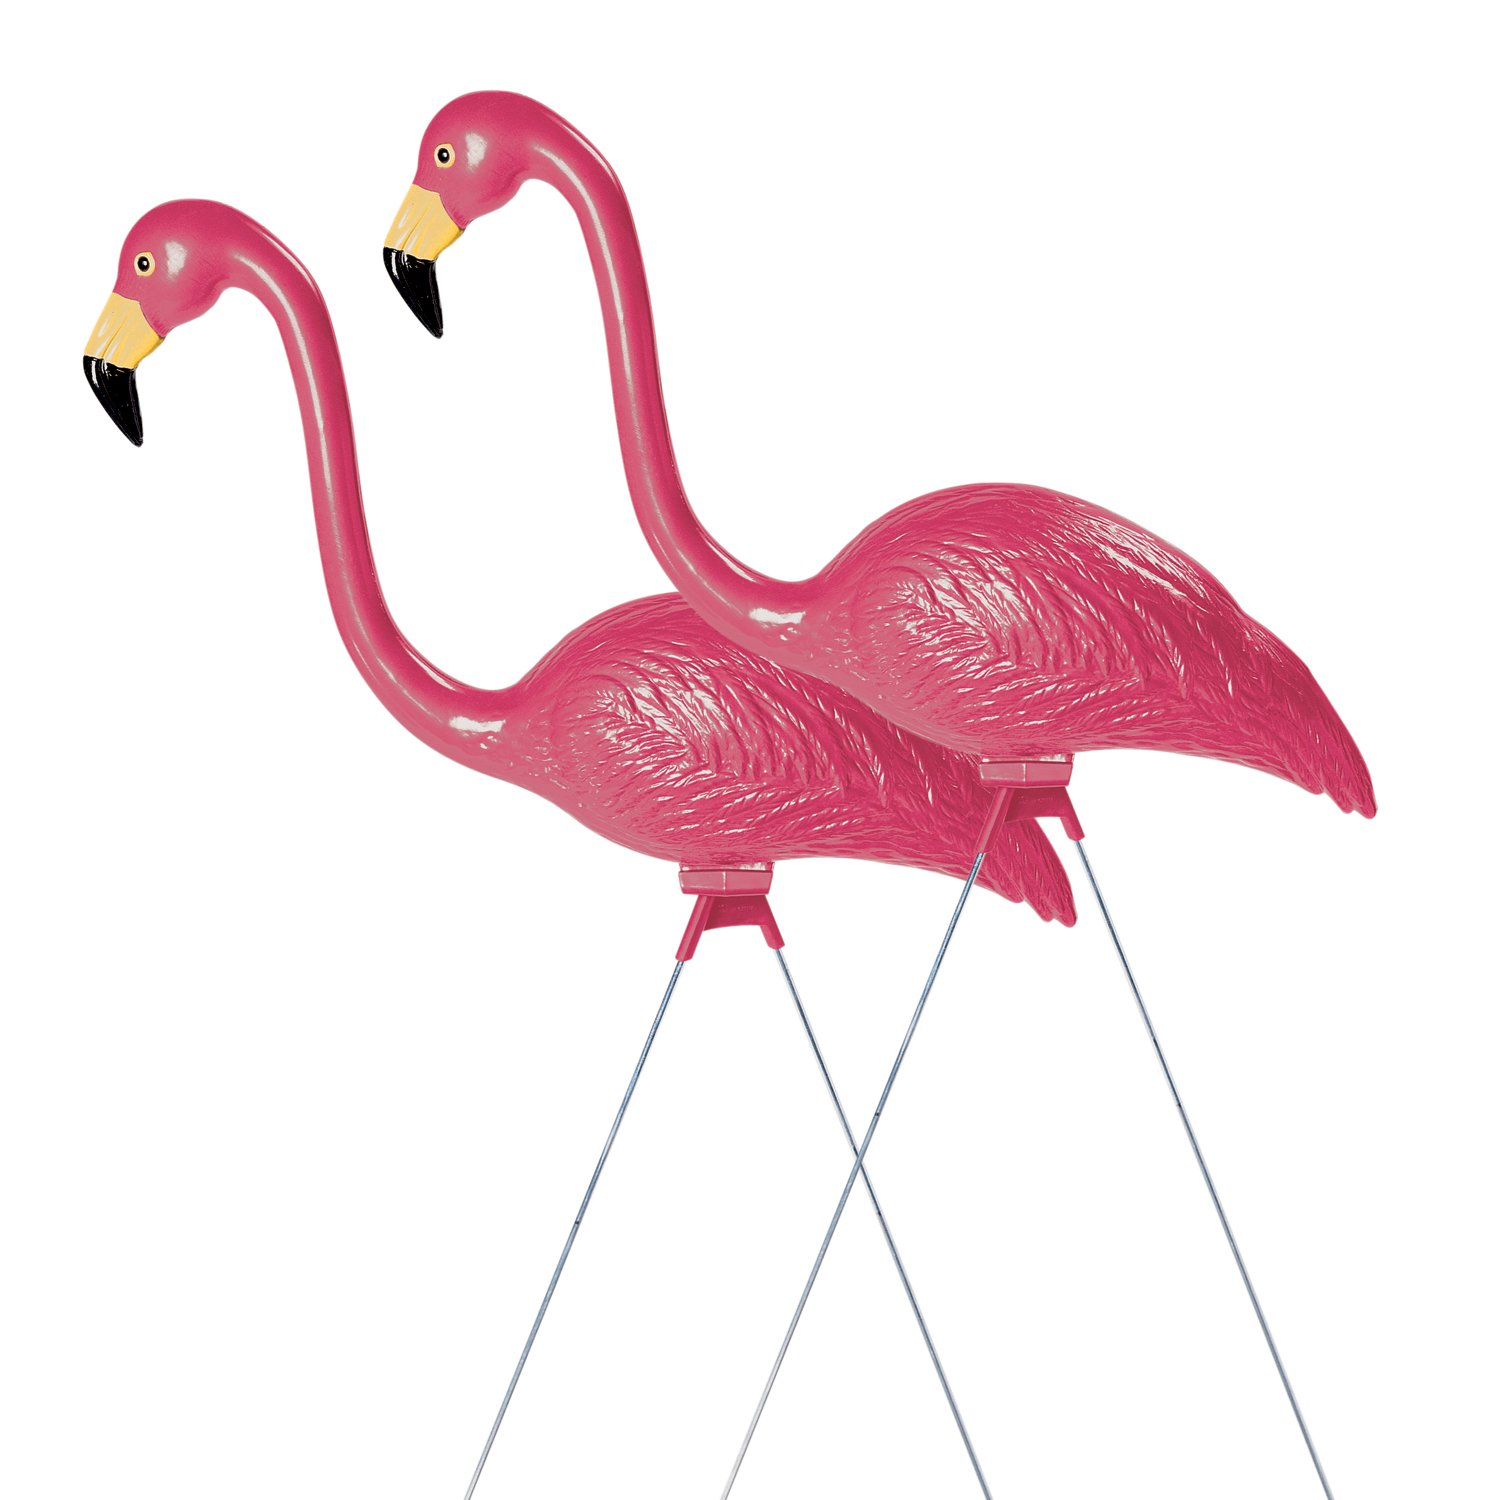 Flamingo garden ornament - Amazon Com Sculptural Gardens Pink Flamingo Lawn Ornament Pair Yard Art Patio Lawn Garden